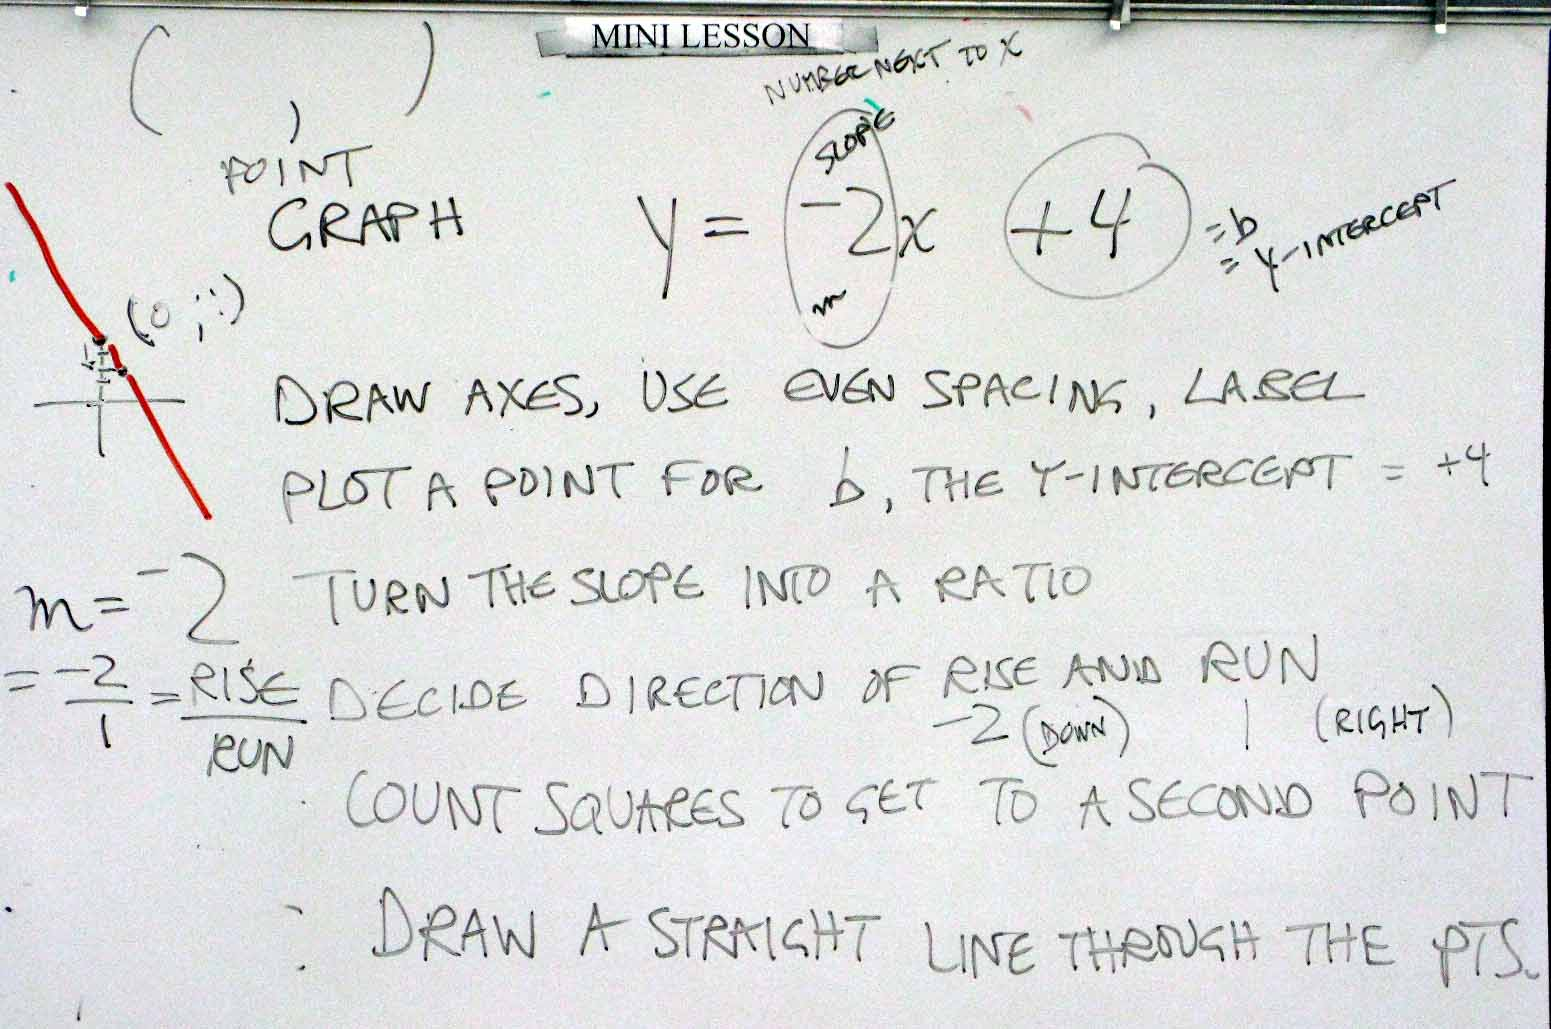 Ywlcs math 9 11 30 notes slope intercept form and tables 11 30 notes slope intercept form and tables falaconquin